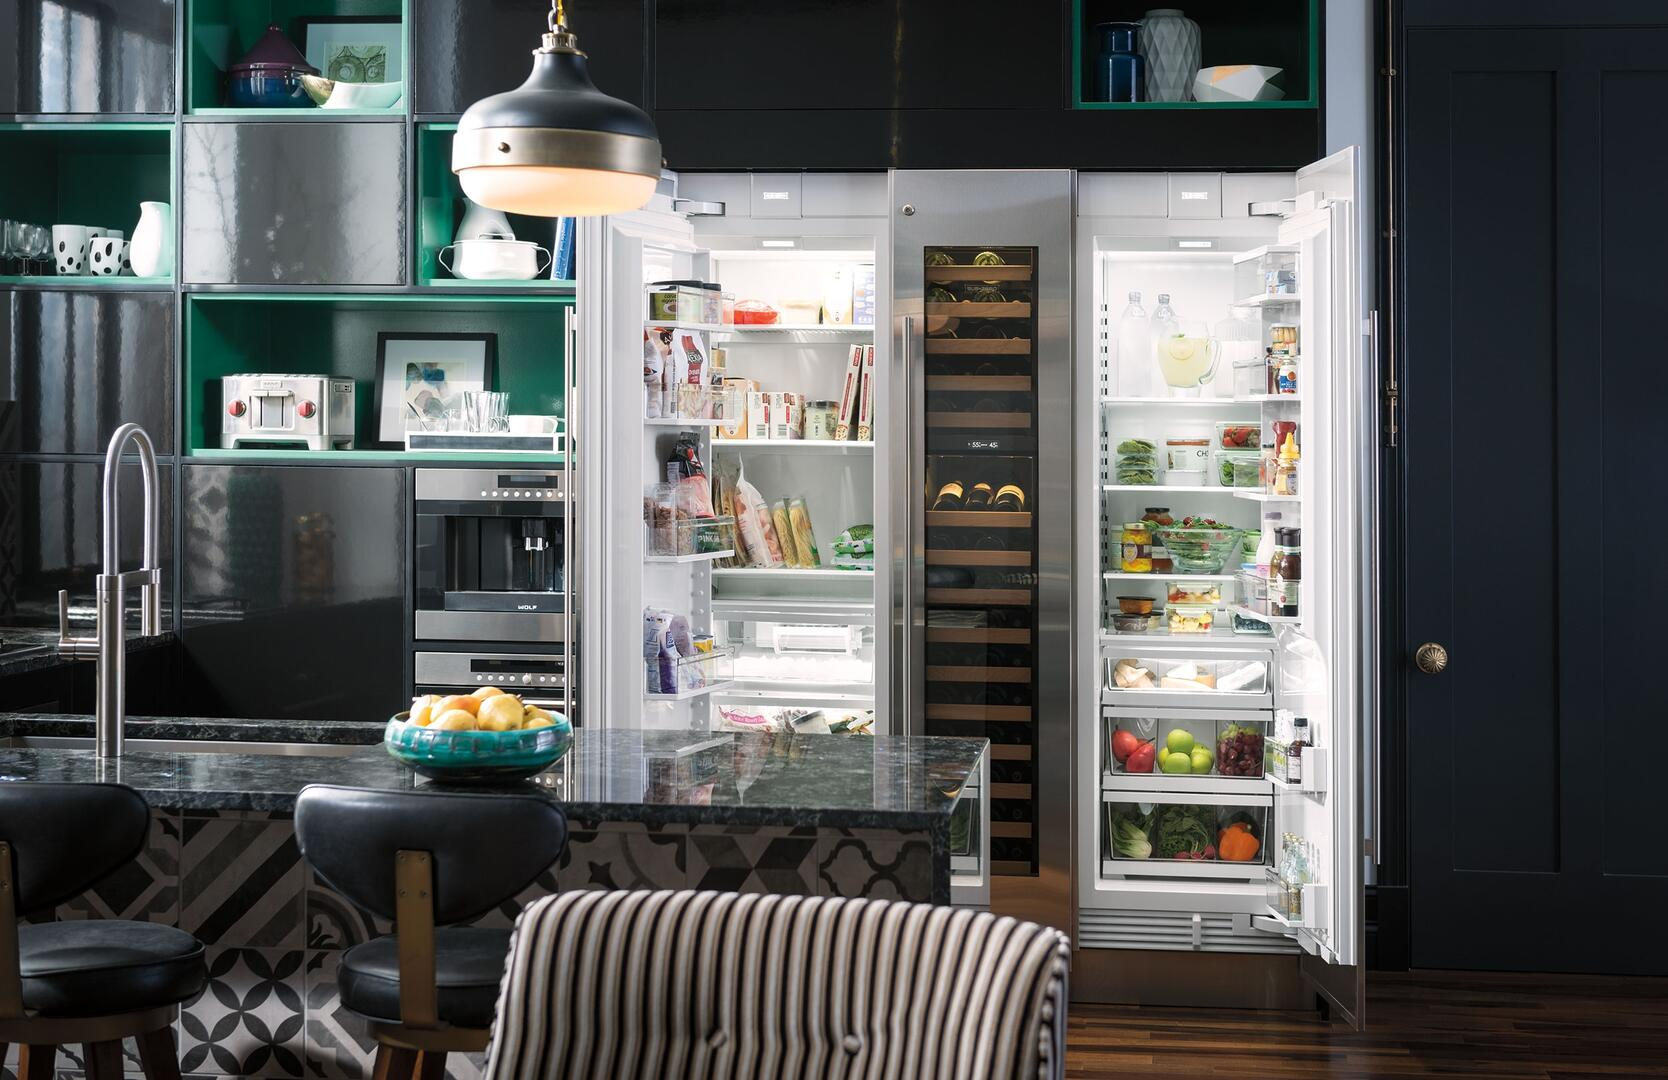 Sub zero counter depth refrigerator -  Sub Zero Shown With Matching Units